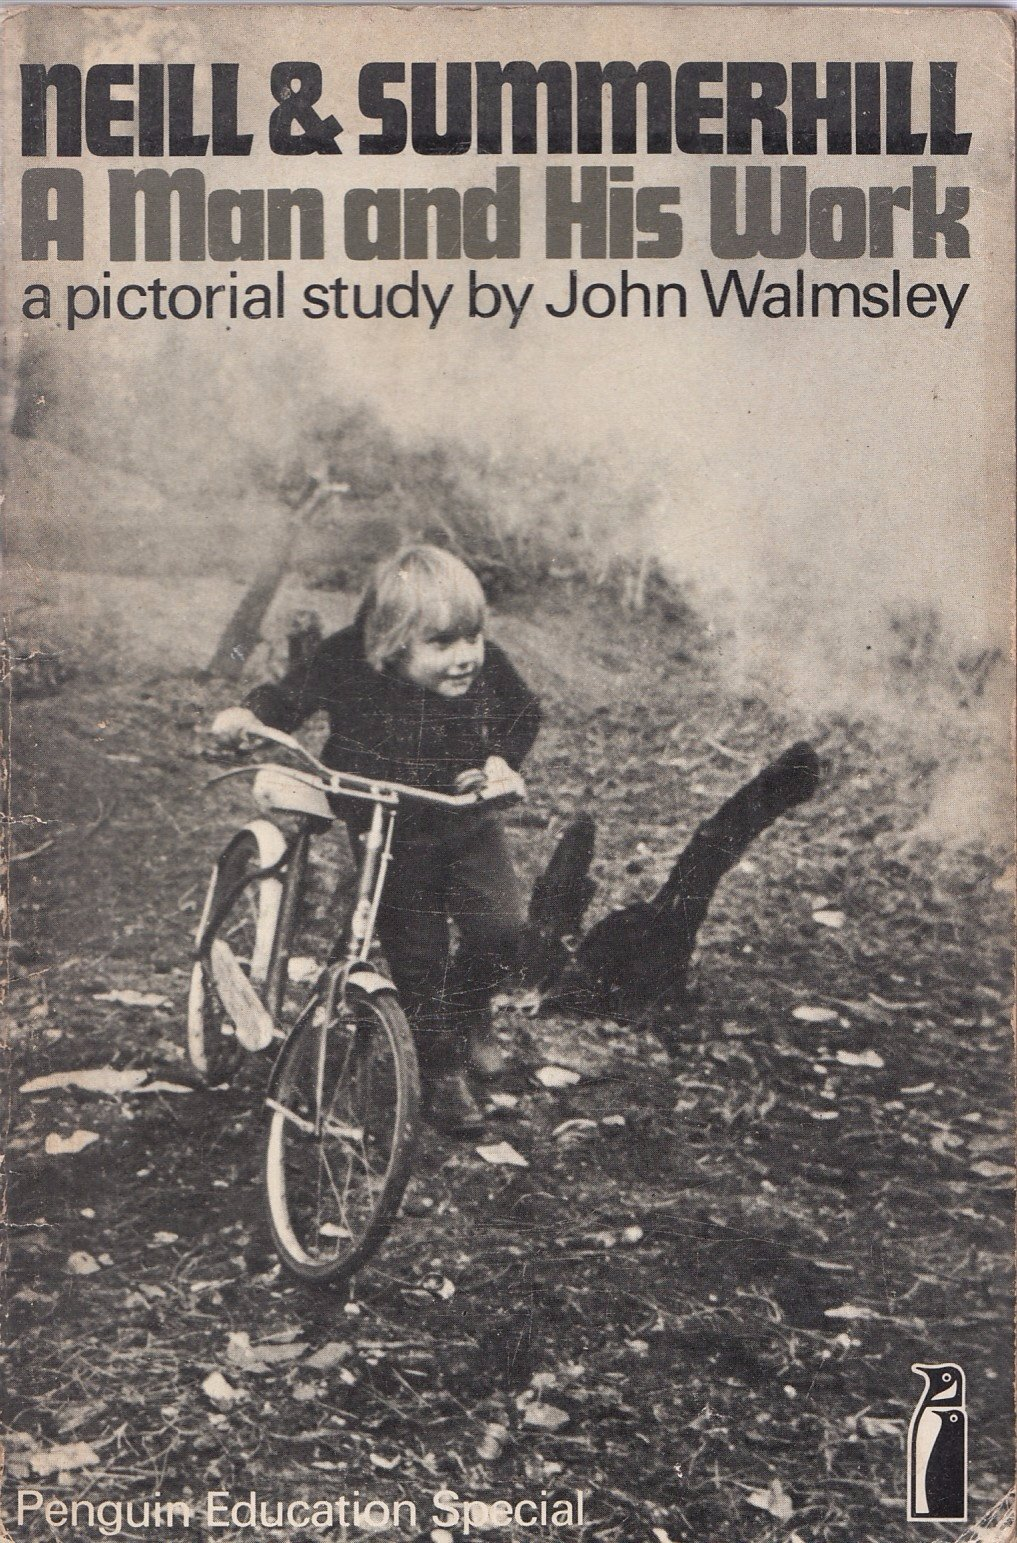 Neill and Summerhill: Pictorial Study (Penguin education specials), Walmsley, John; Berg, Leila